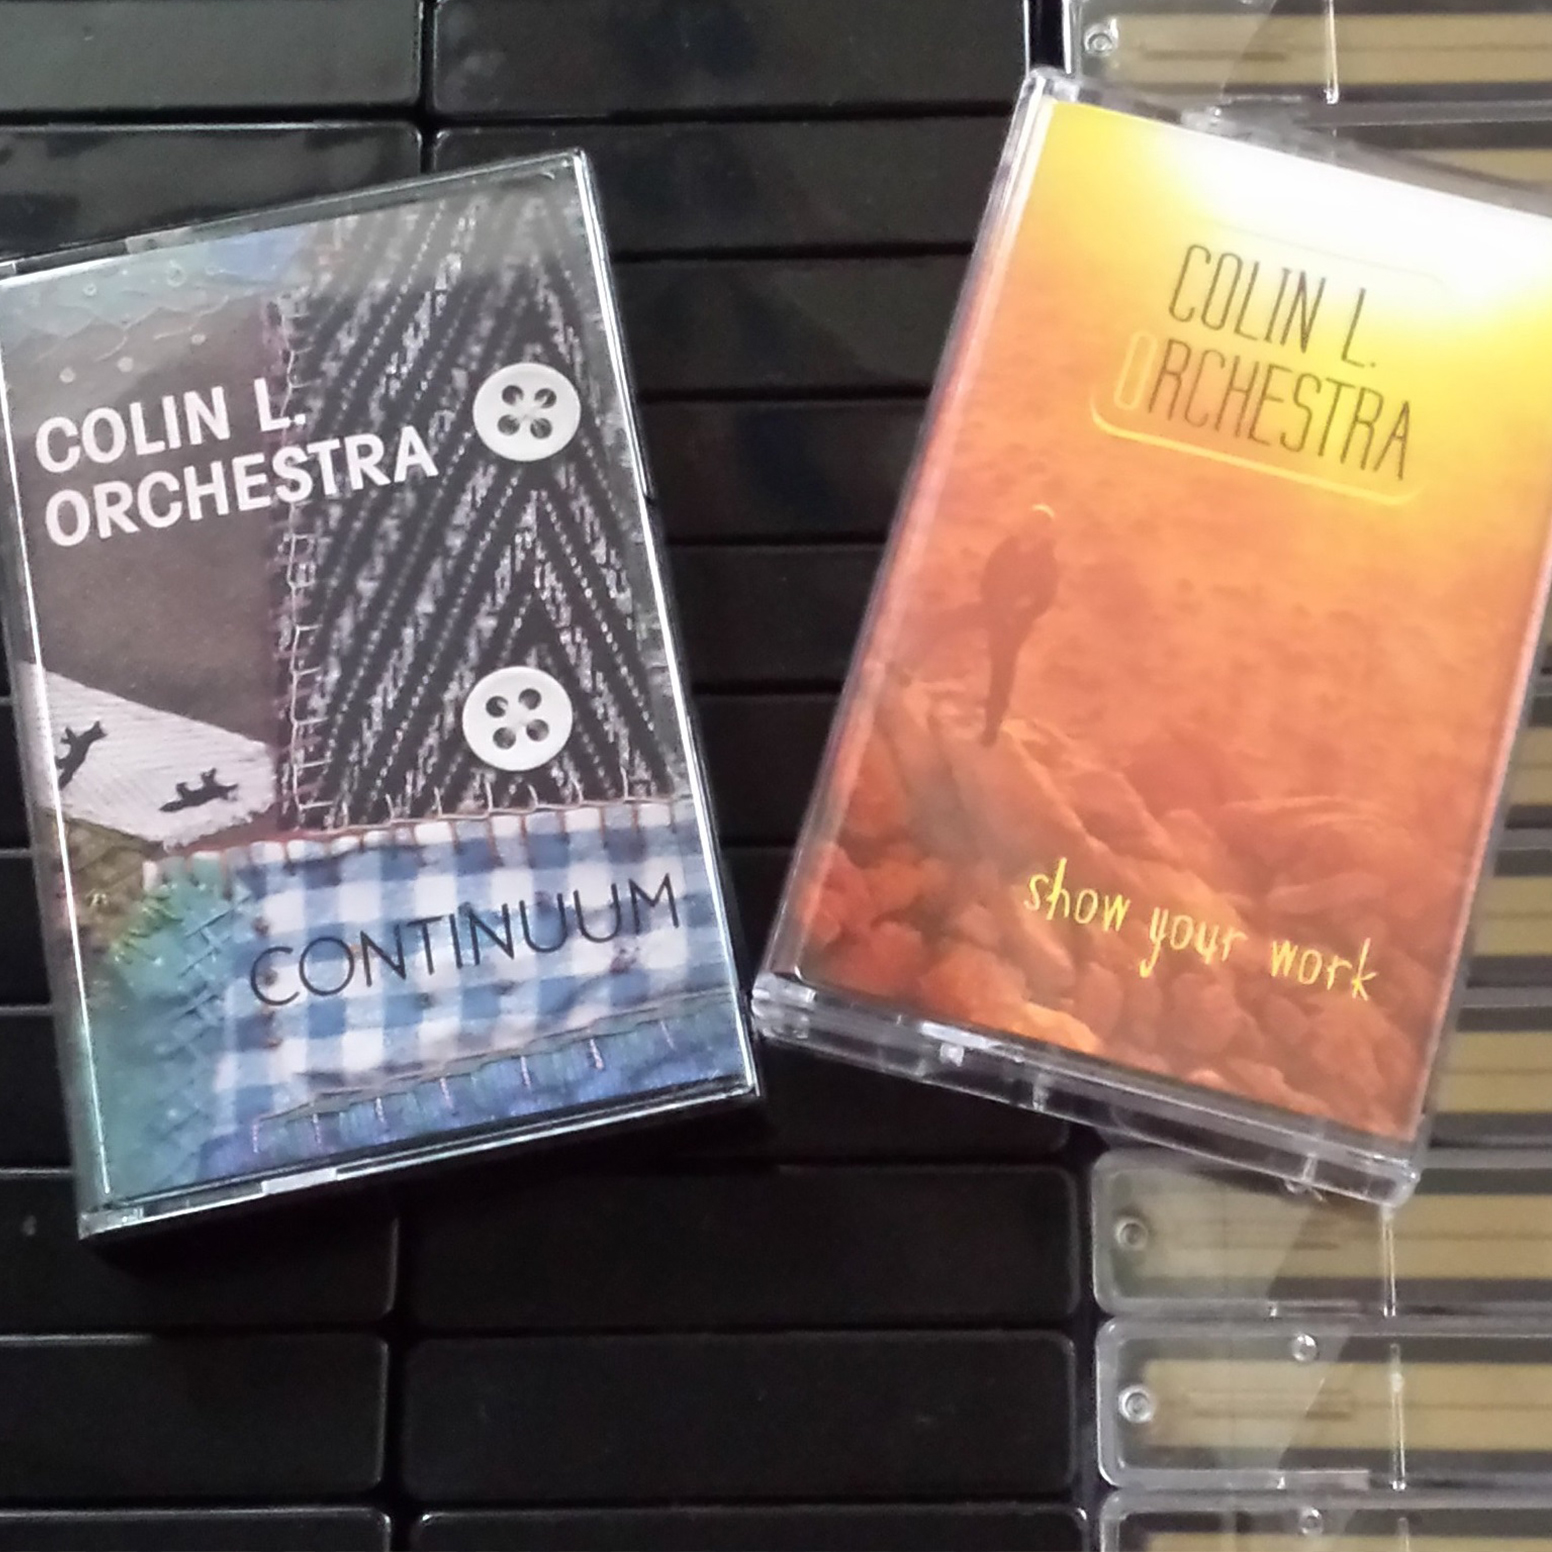 Colin L. Orchestra – Show Your Work and Continuum